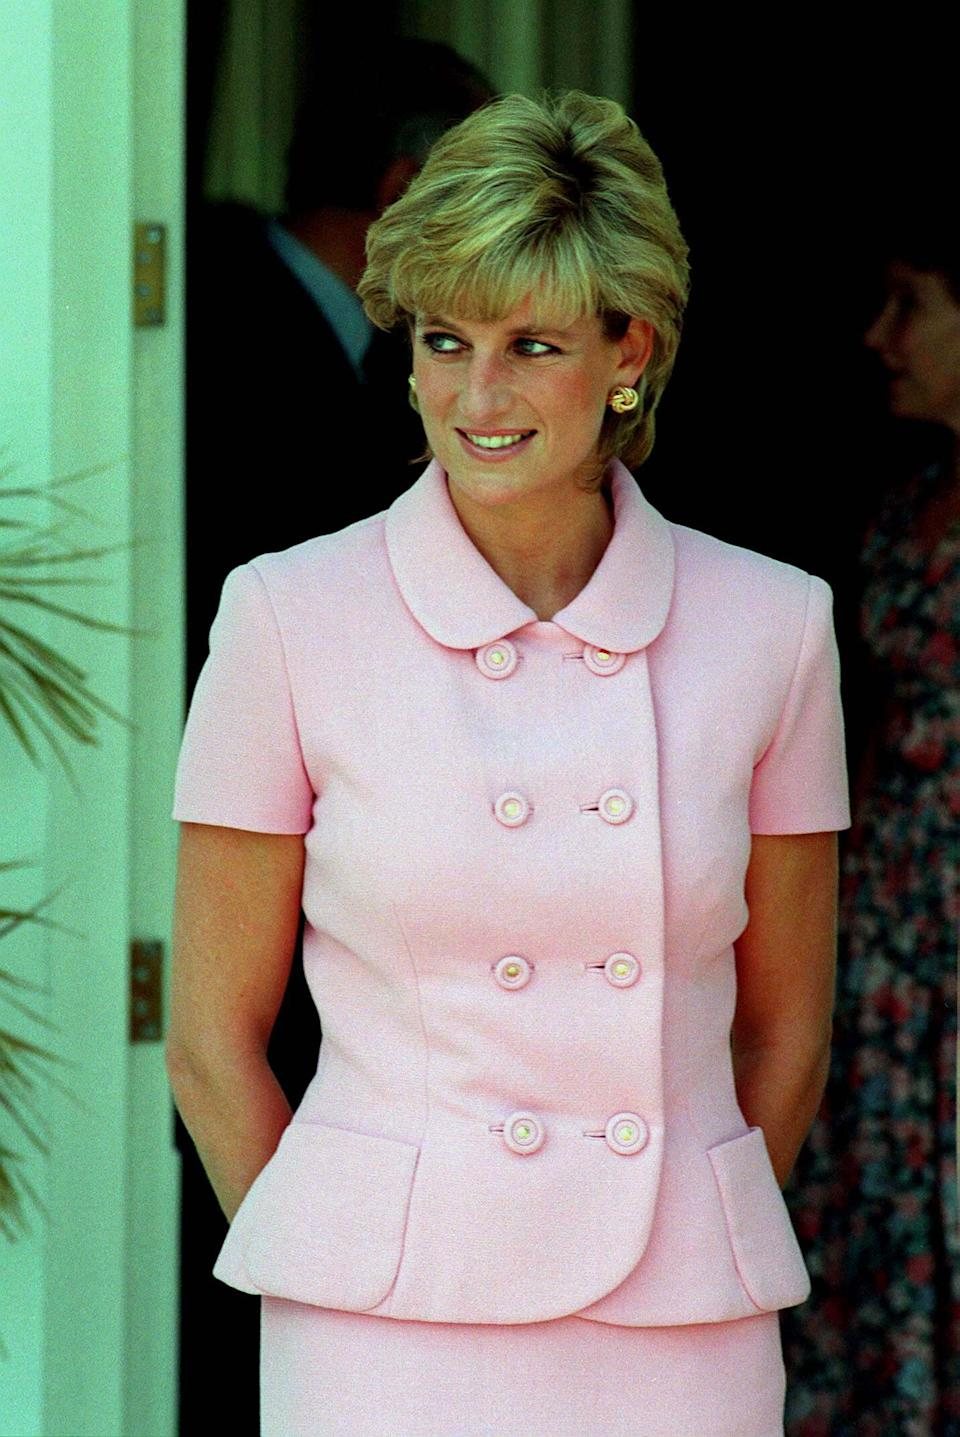 Princess Diana pictured in 1995 (Photo: Anwar Hussein via Getty Images)